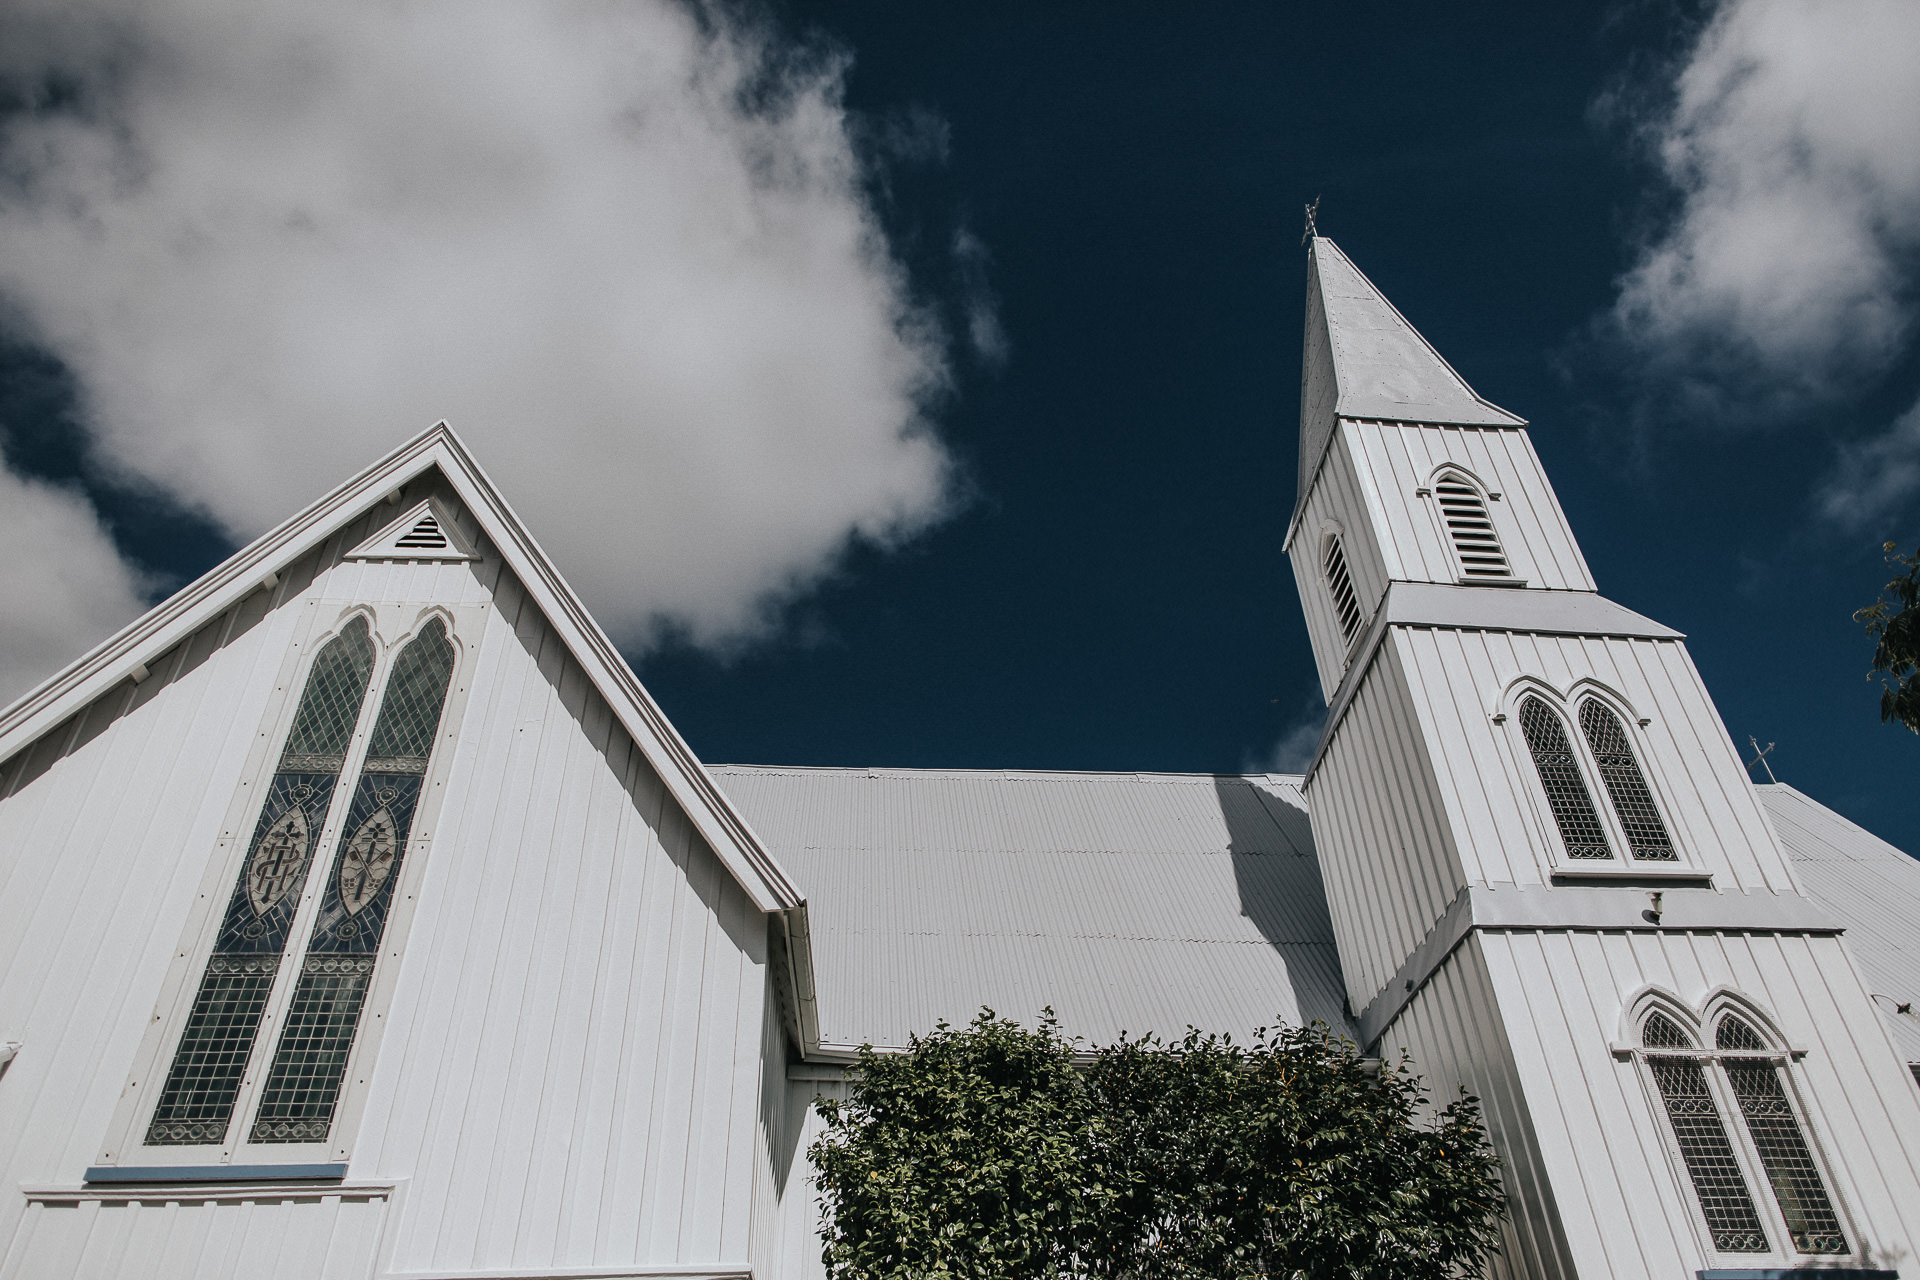 Akaroa church